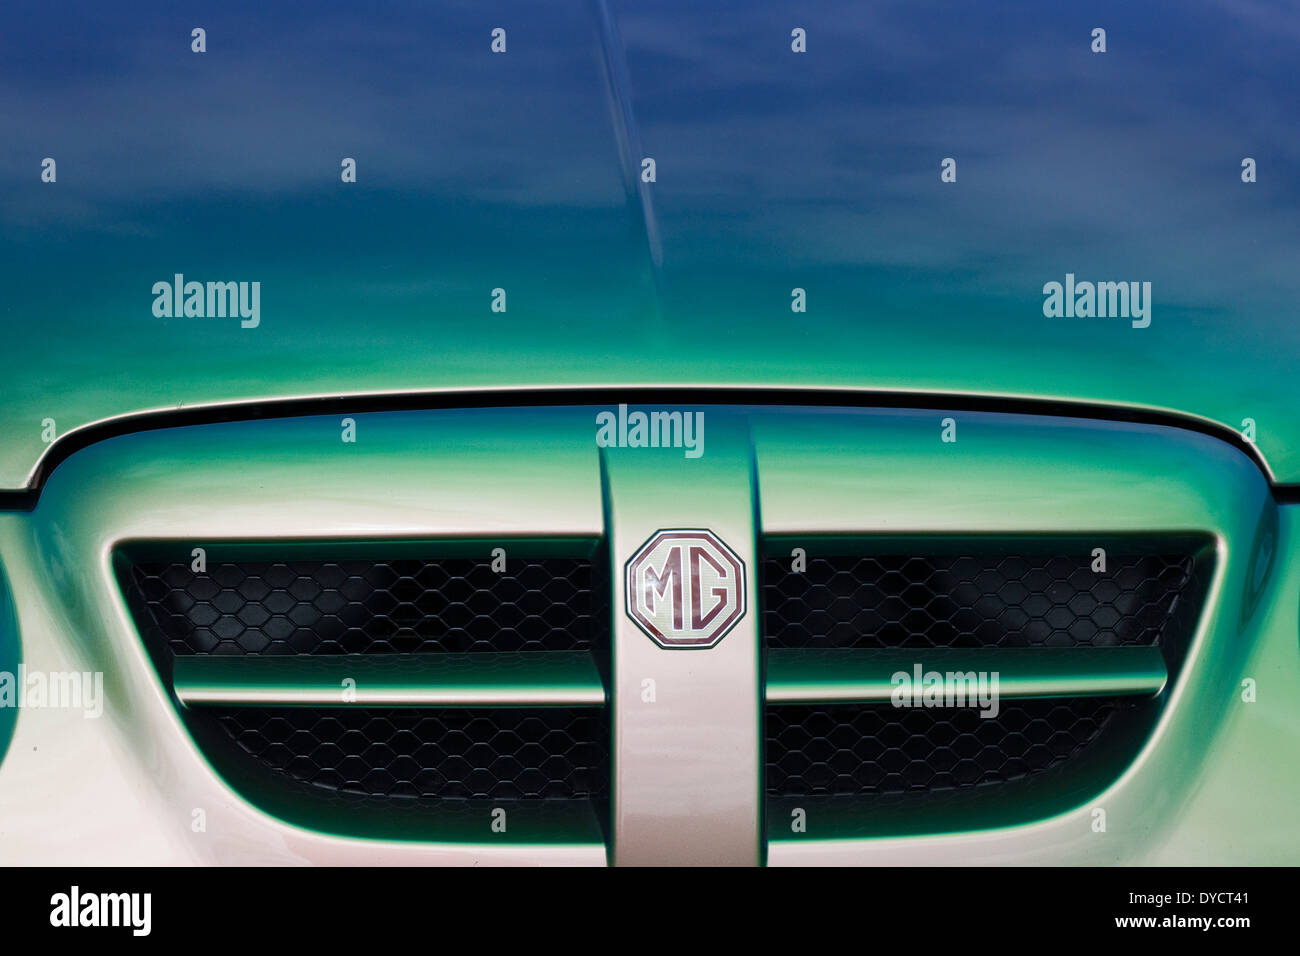 Bonnet of a MG Lifestyle Vehicle car club and Logo - Stock Image